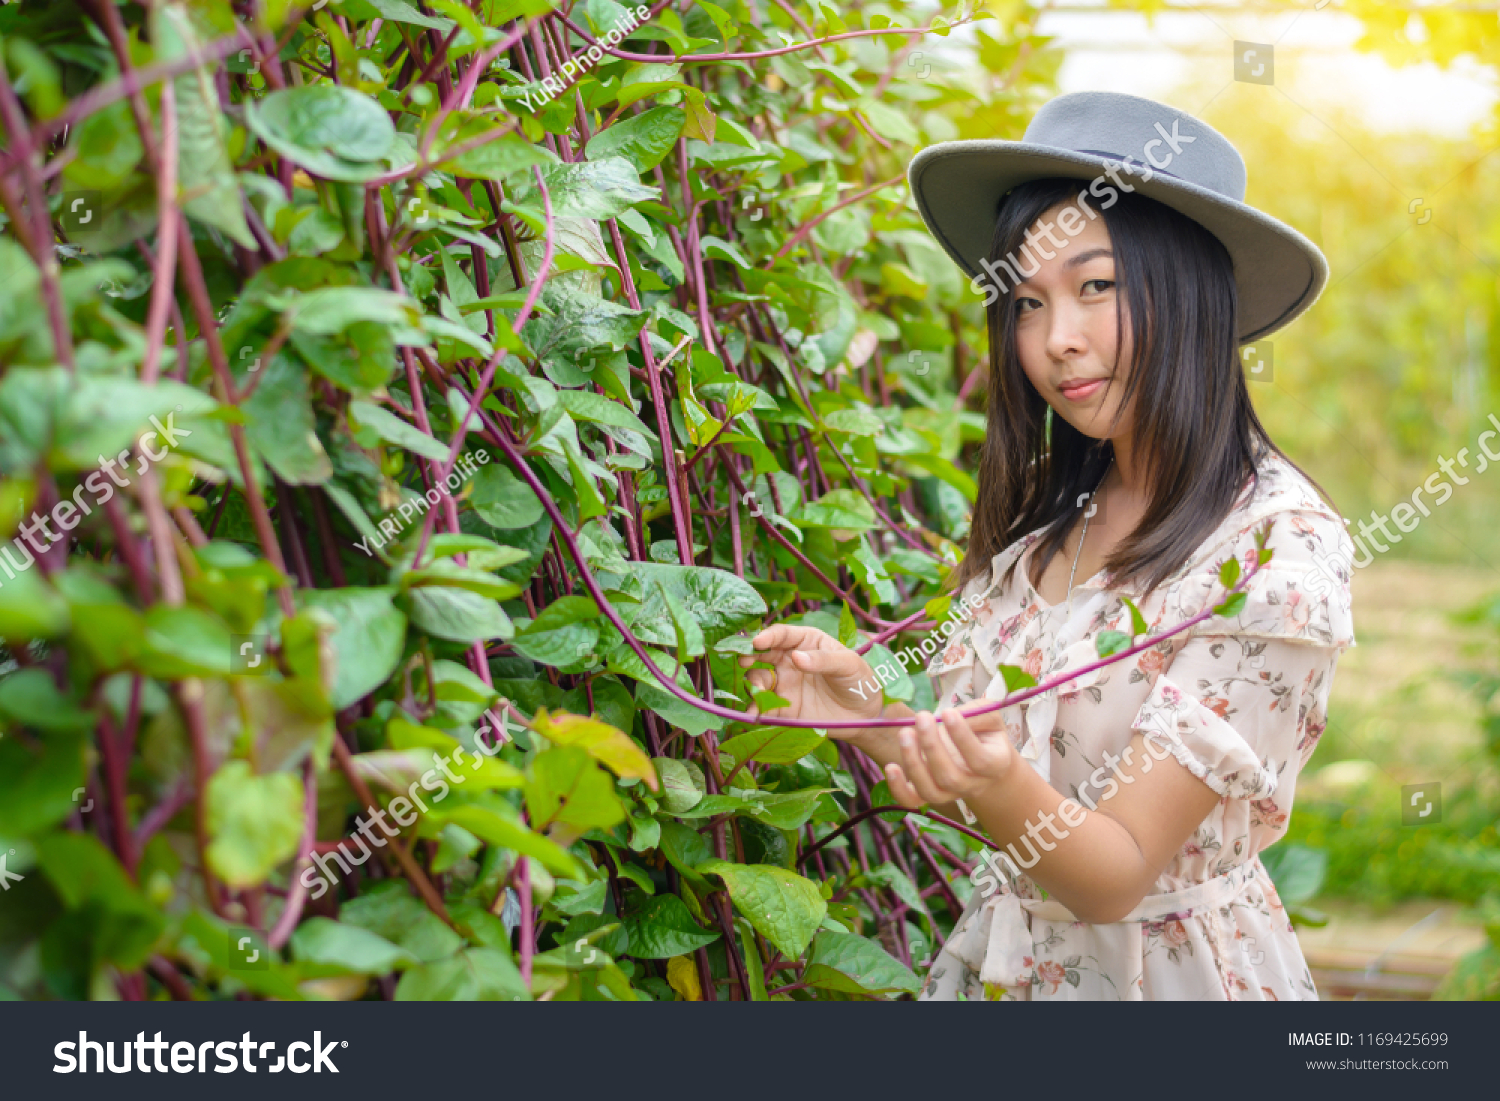 A woman portrait wearing a flower dress with gray retro hat and show the  Malabar spinach 852a18b93f97